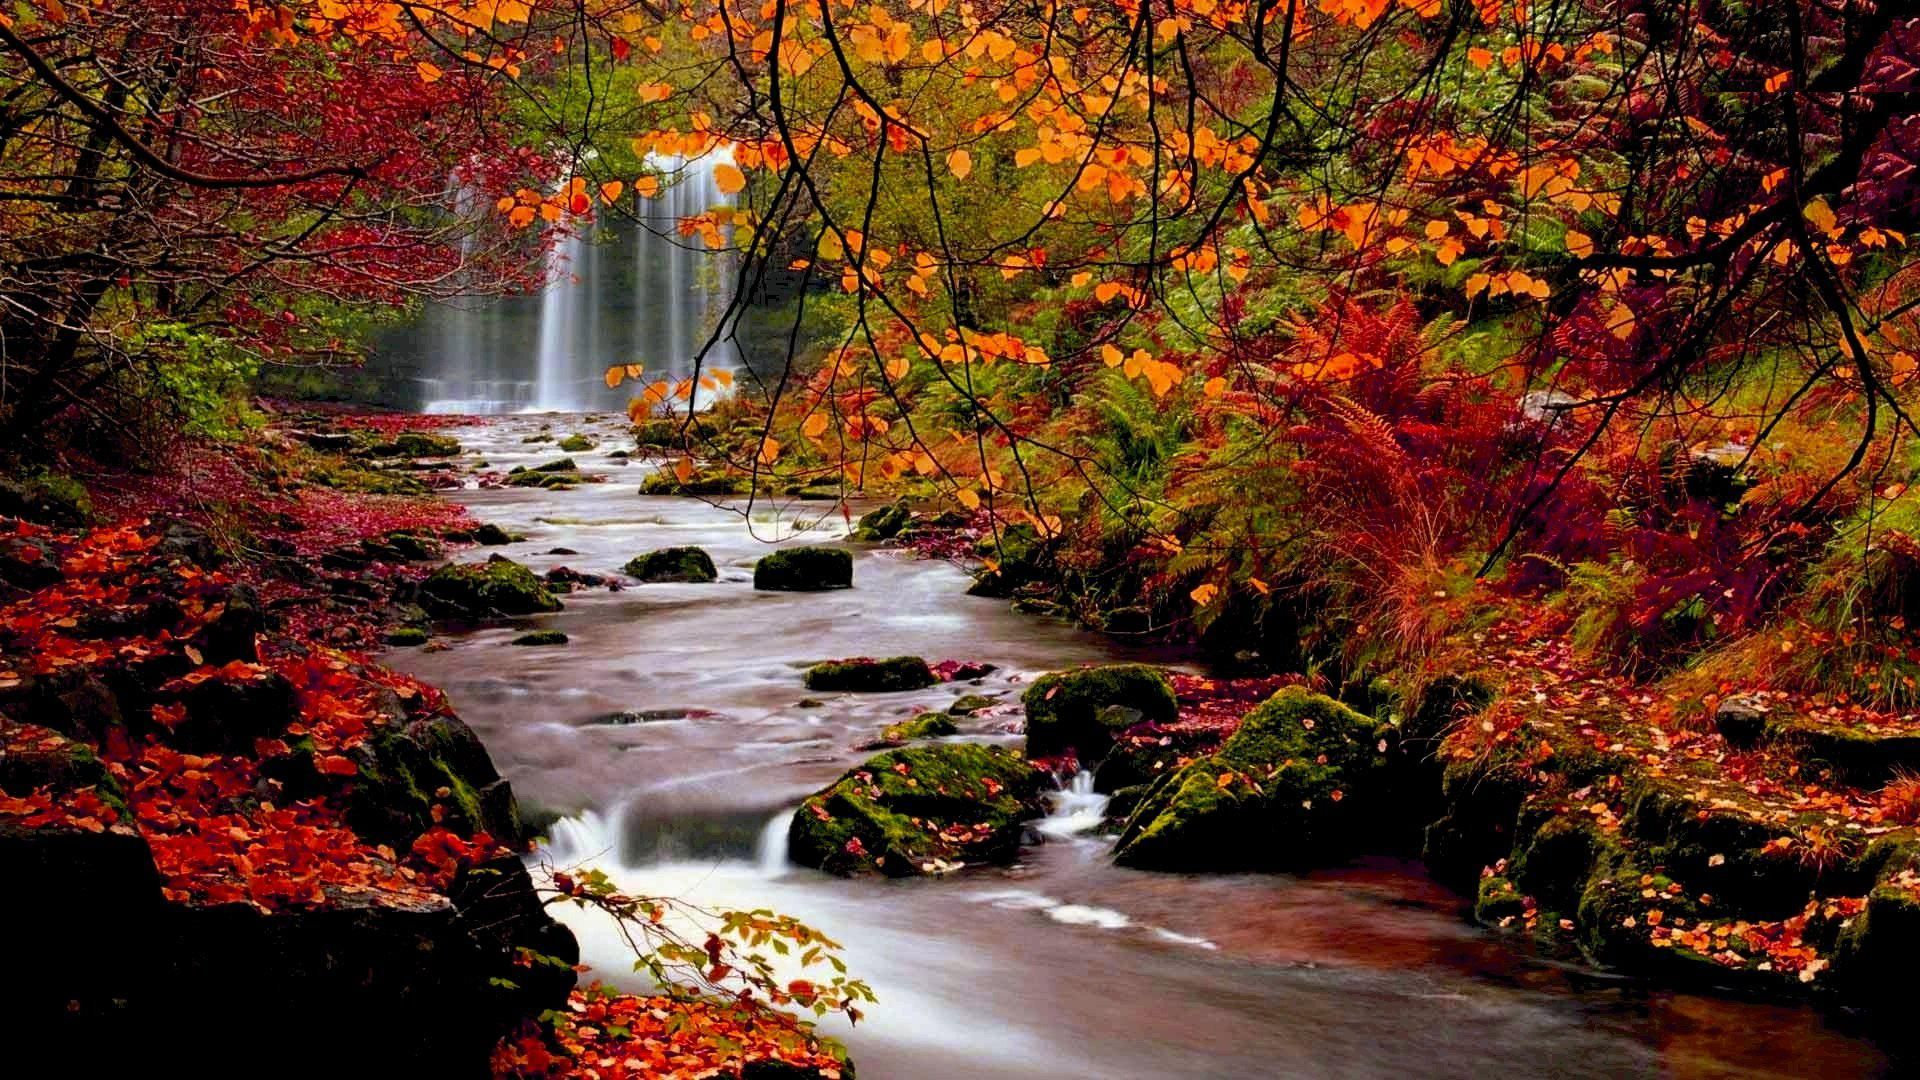 landscape autumn hd wallpaper - photo #3